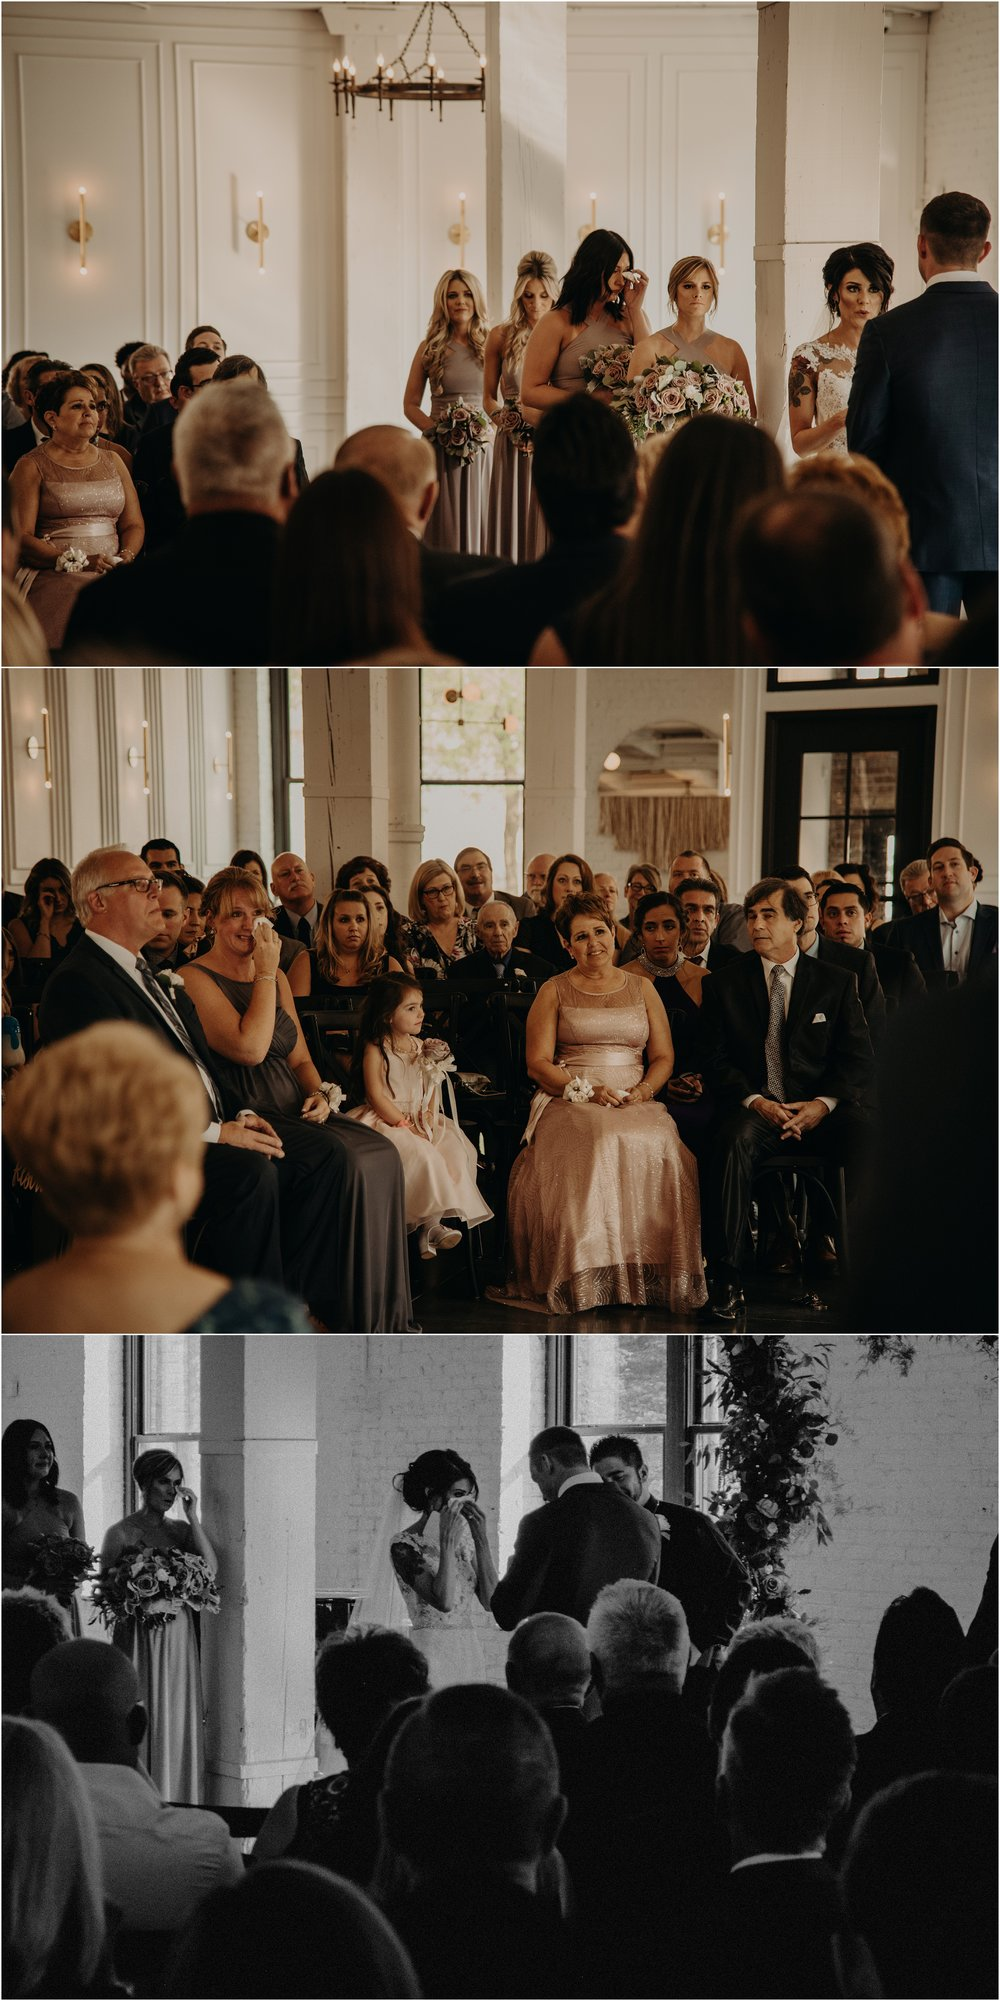 A teary audience during the vow reading of Kate + Joe's ceremony